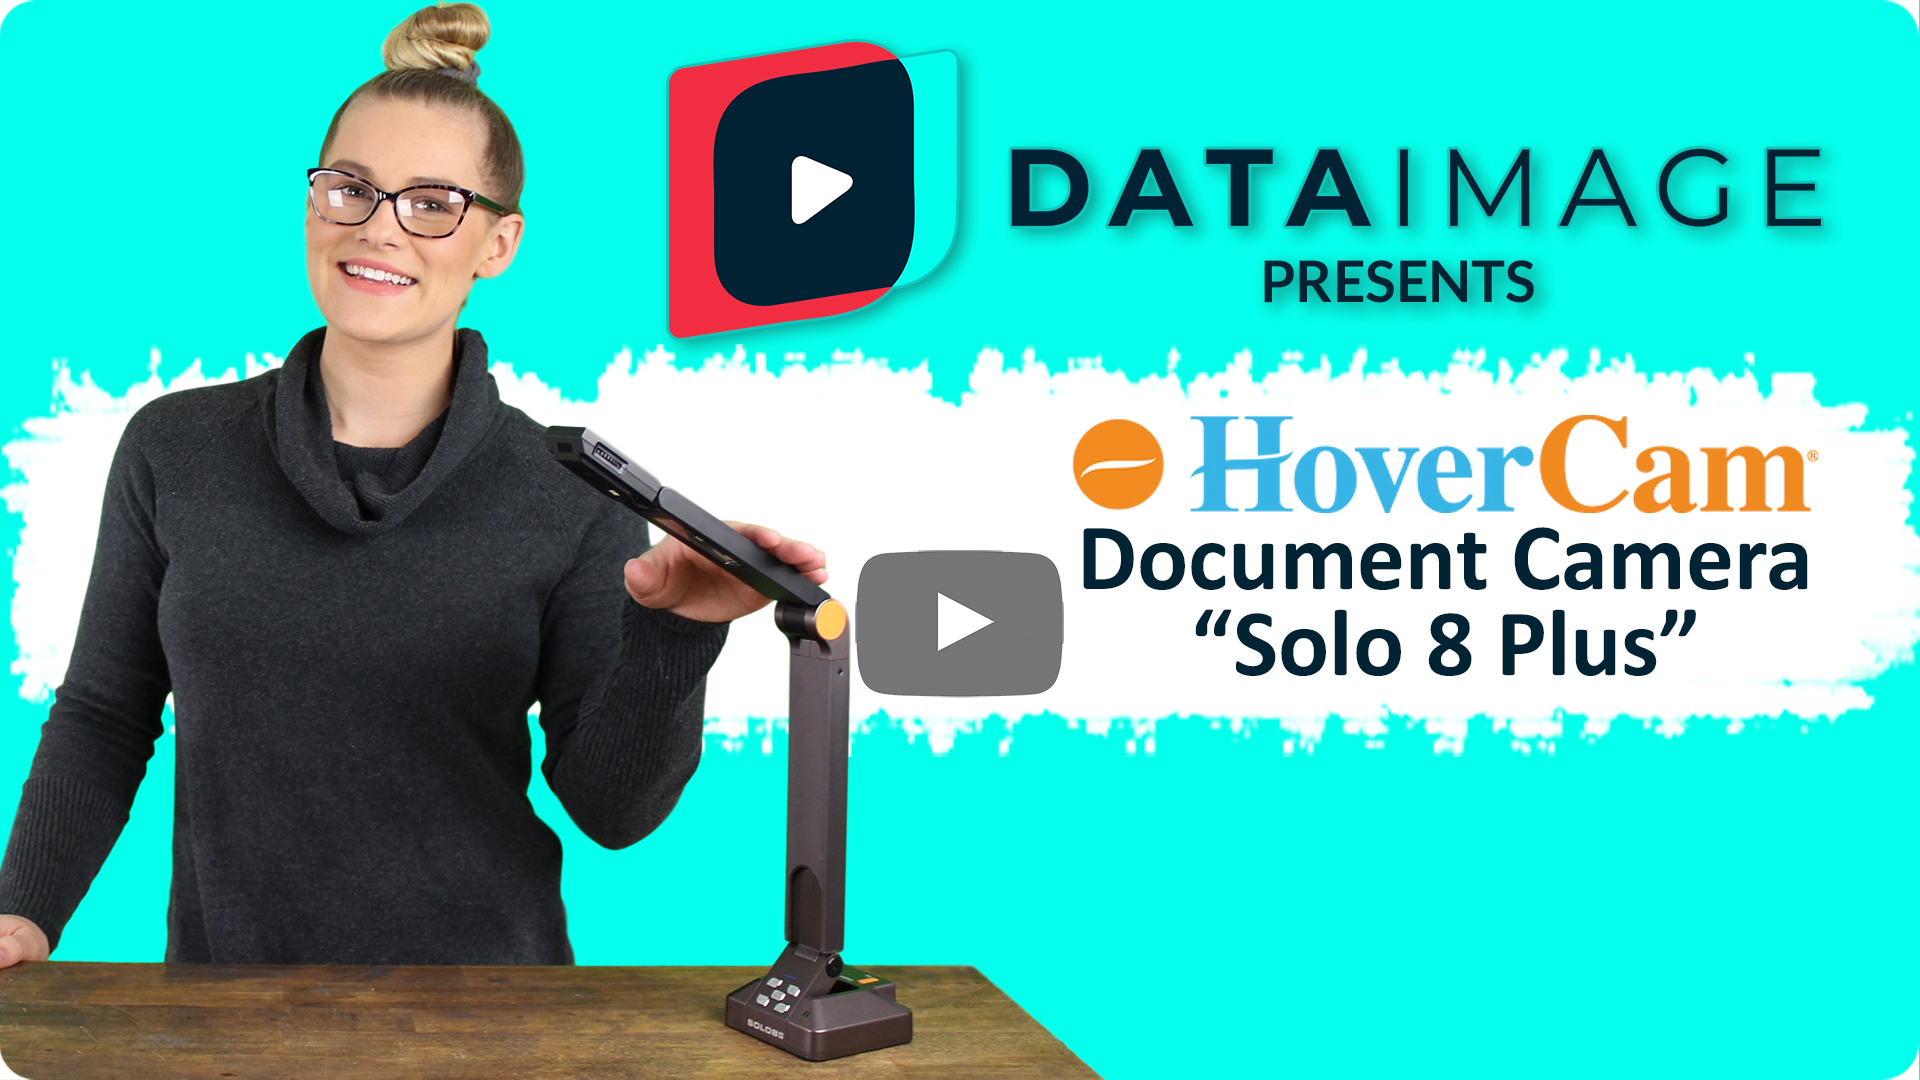 Data Image Presents the HoverCam Solo 8 Plus Document Camera